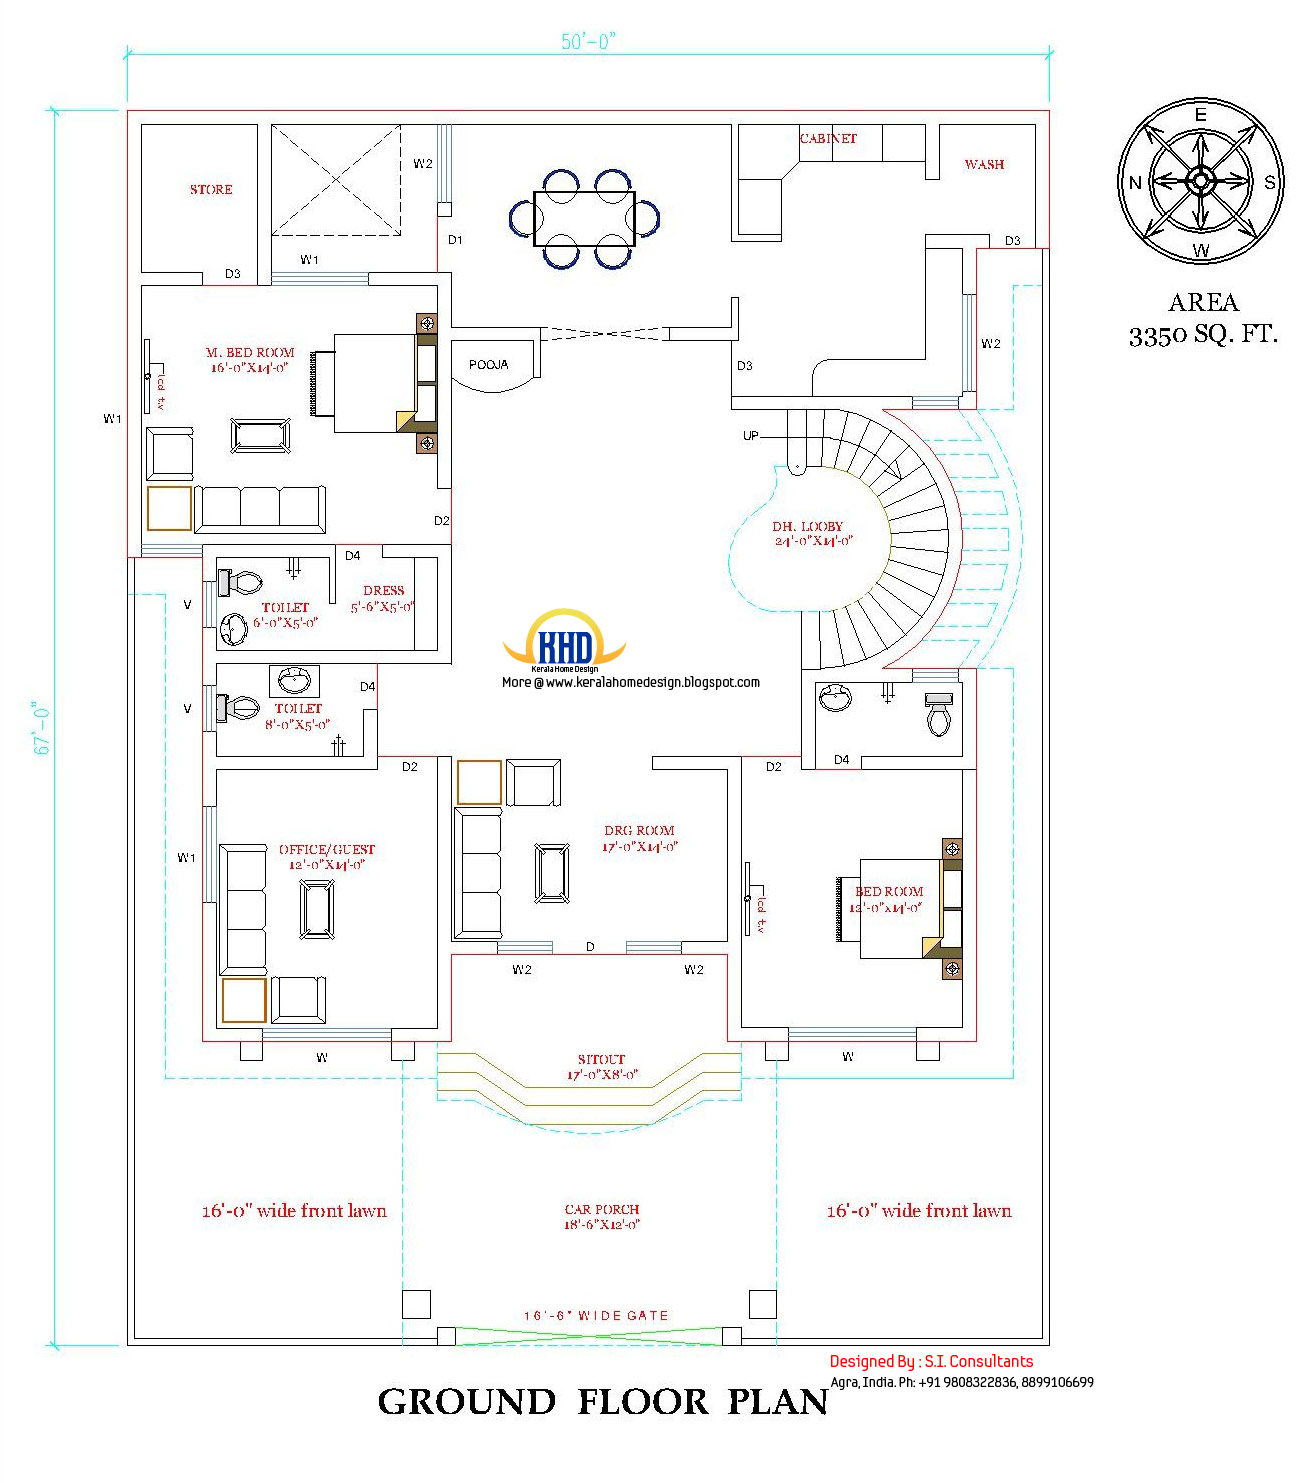 3000 Sq Ft. House Floor Plan